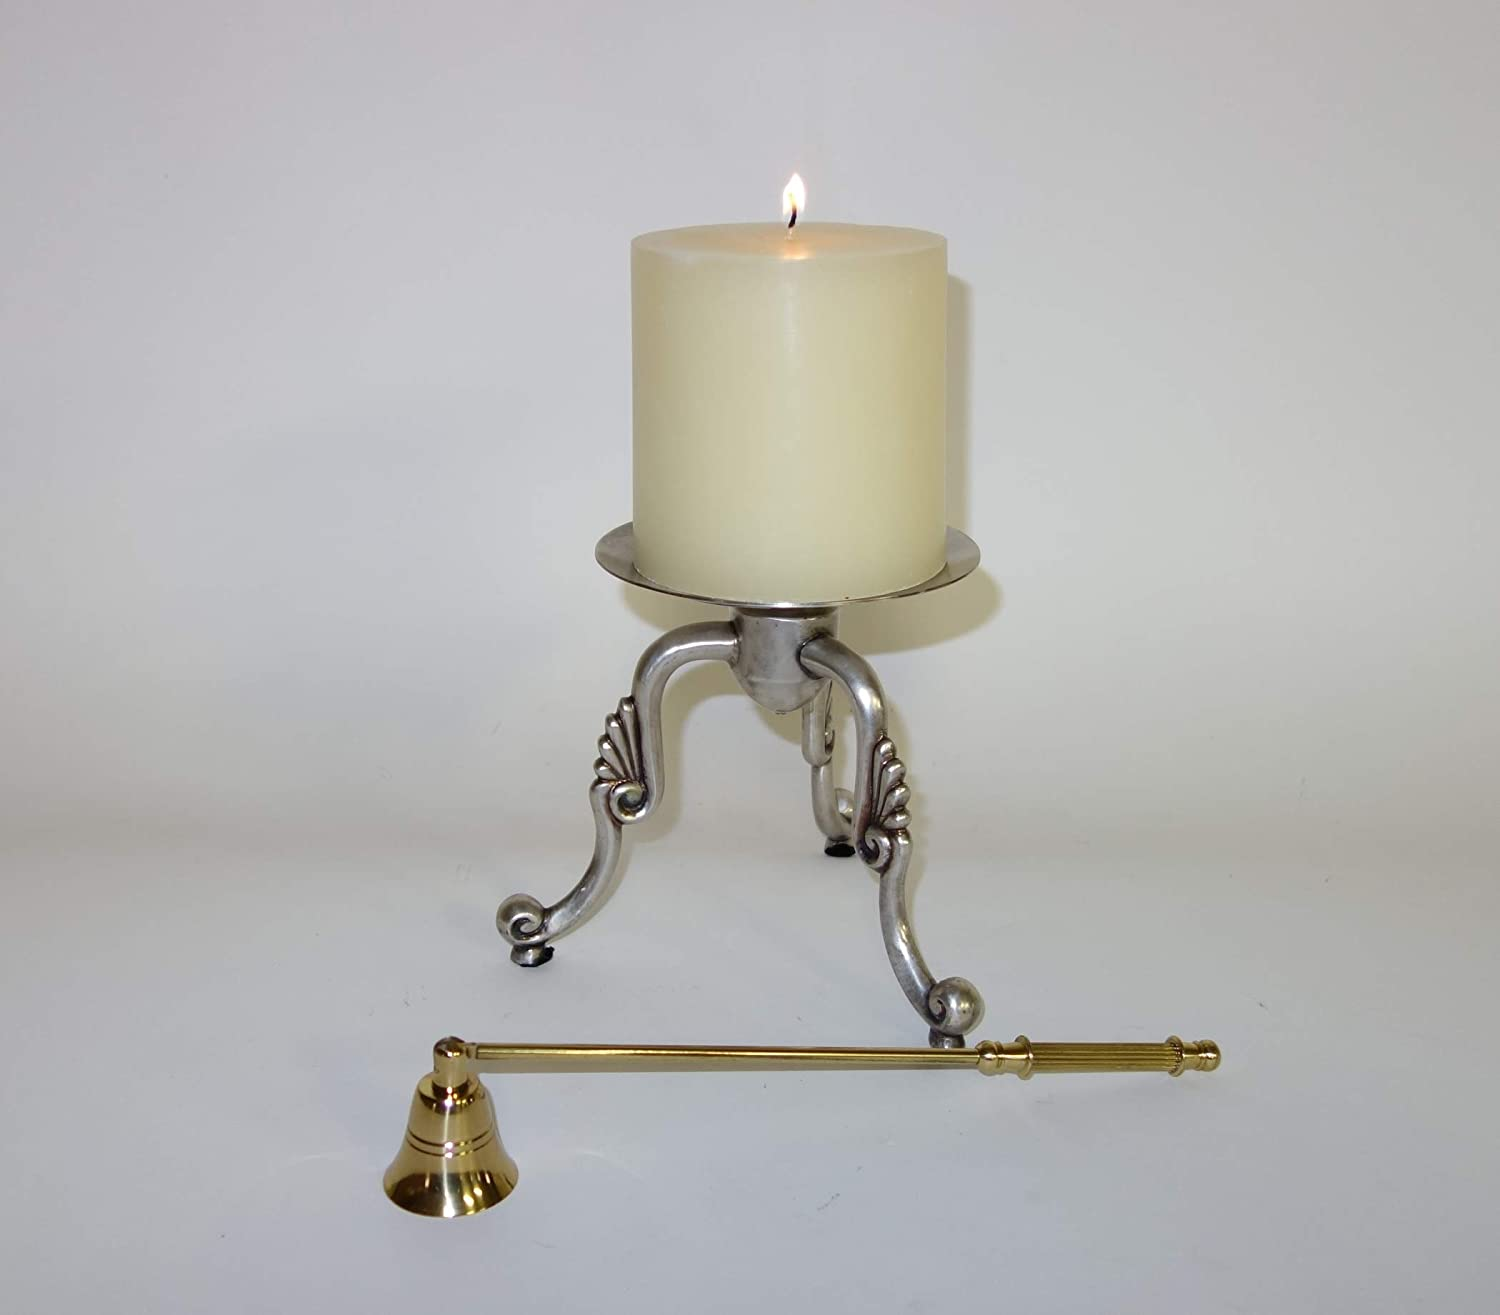 Frolic Home Interiors Antique Silver Finish Pillar Candle Holder with Brass Candle Snuffer